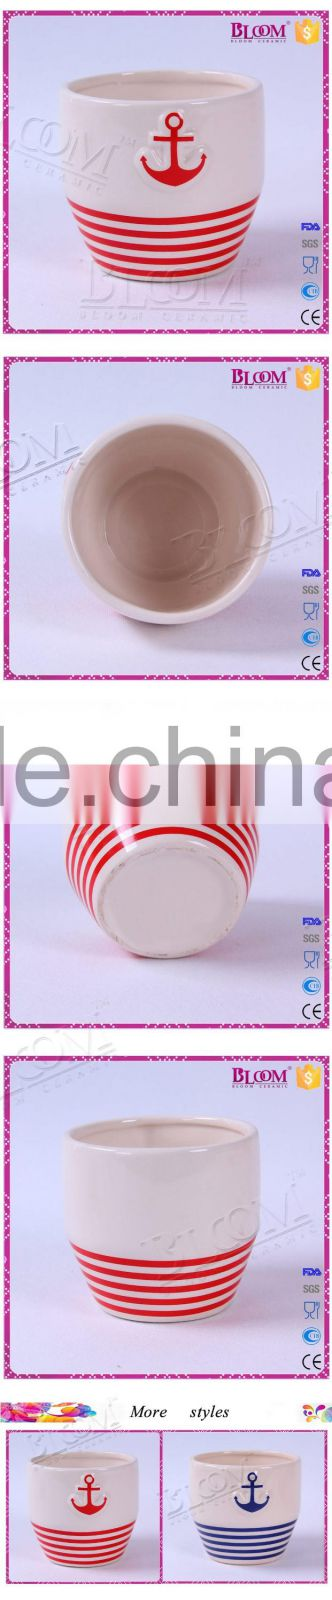 creative modern simple style mini ceramic vase